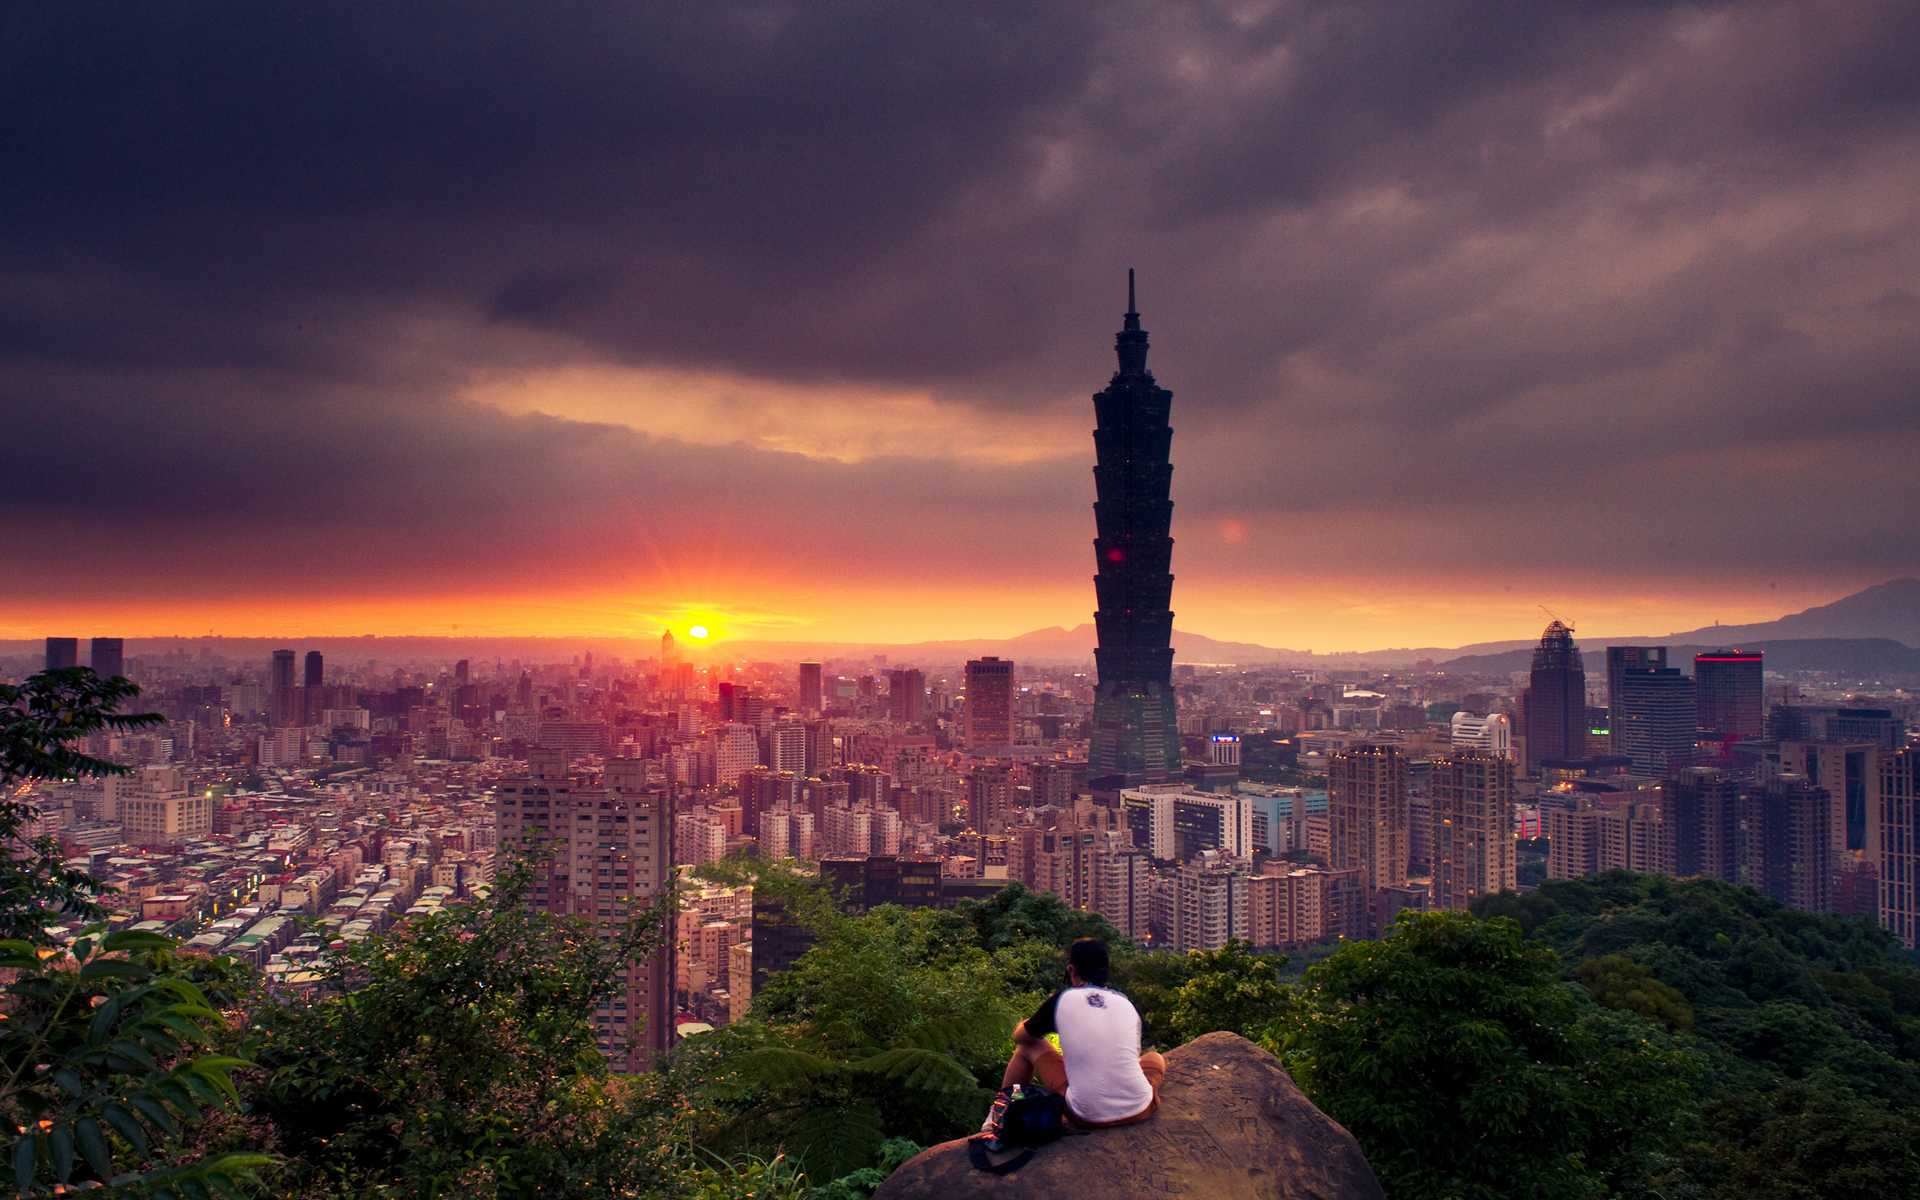 daily wallpaper: warm sunset in taipei | i like to waste my time